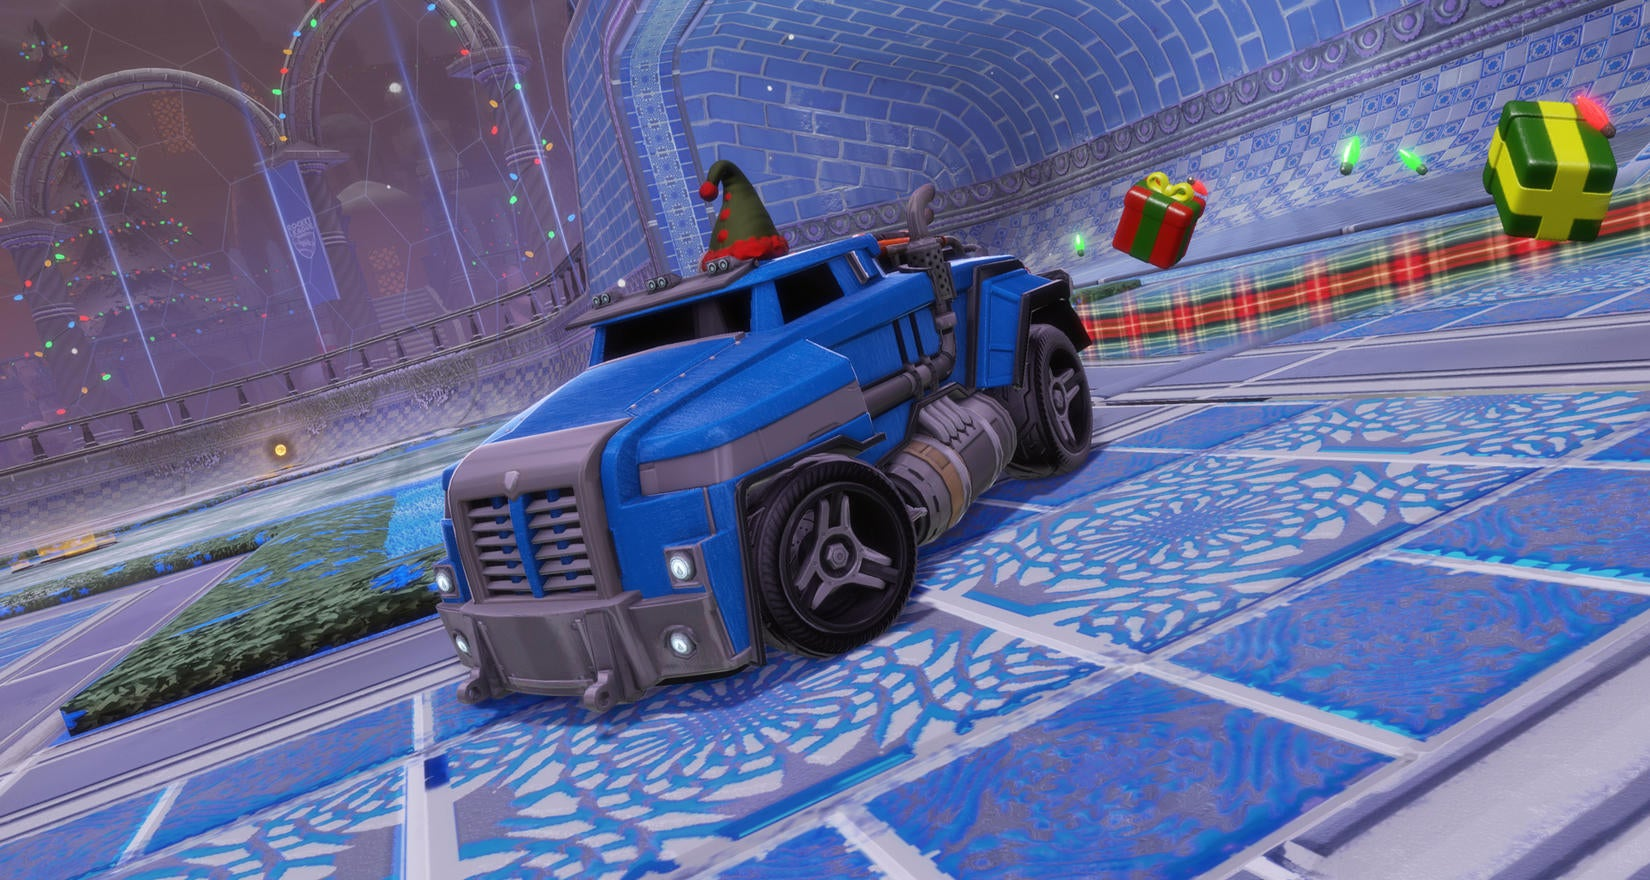 Holiday 2016 Items Dropping Soon | Rocket League® - Official Site